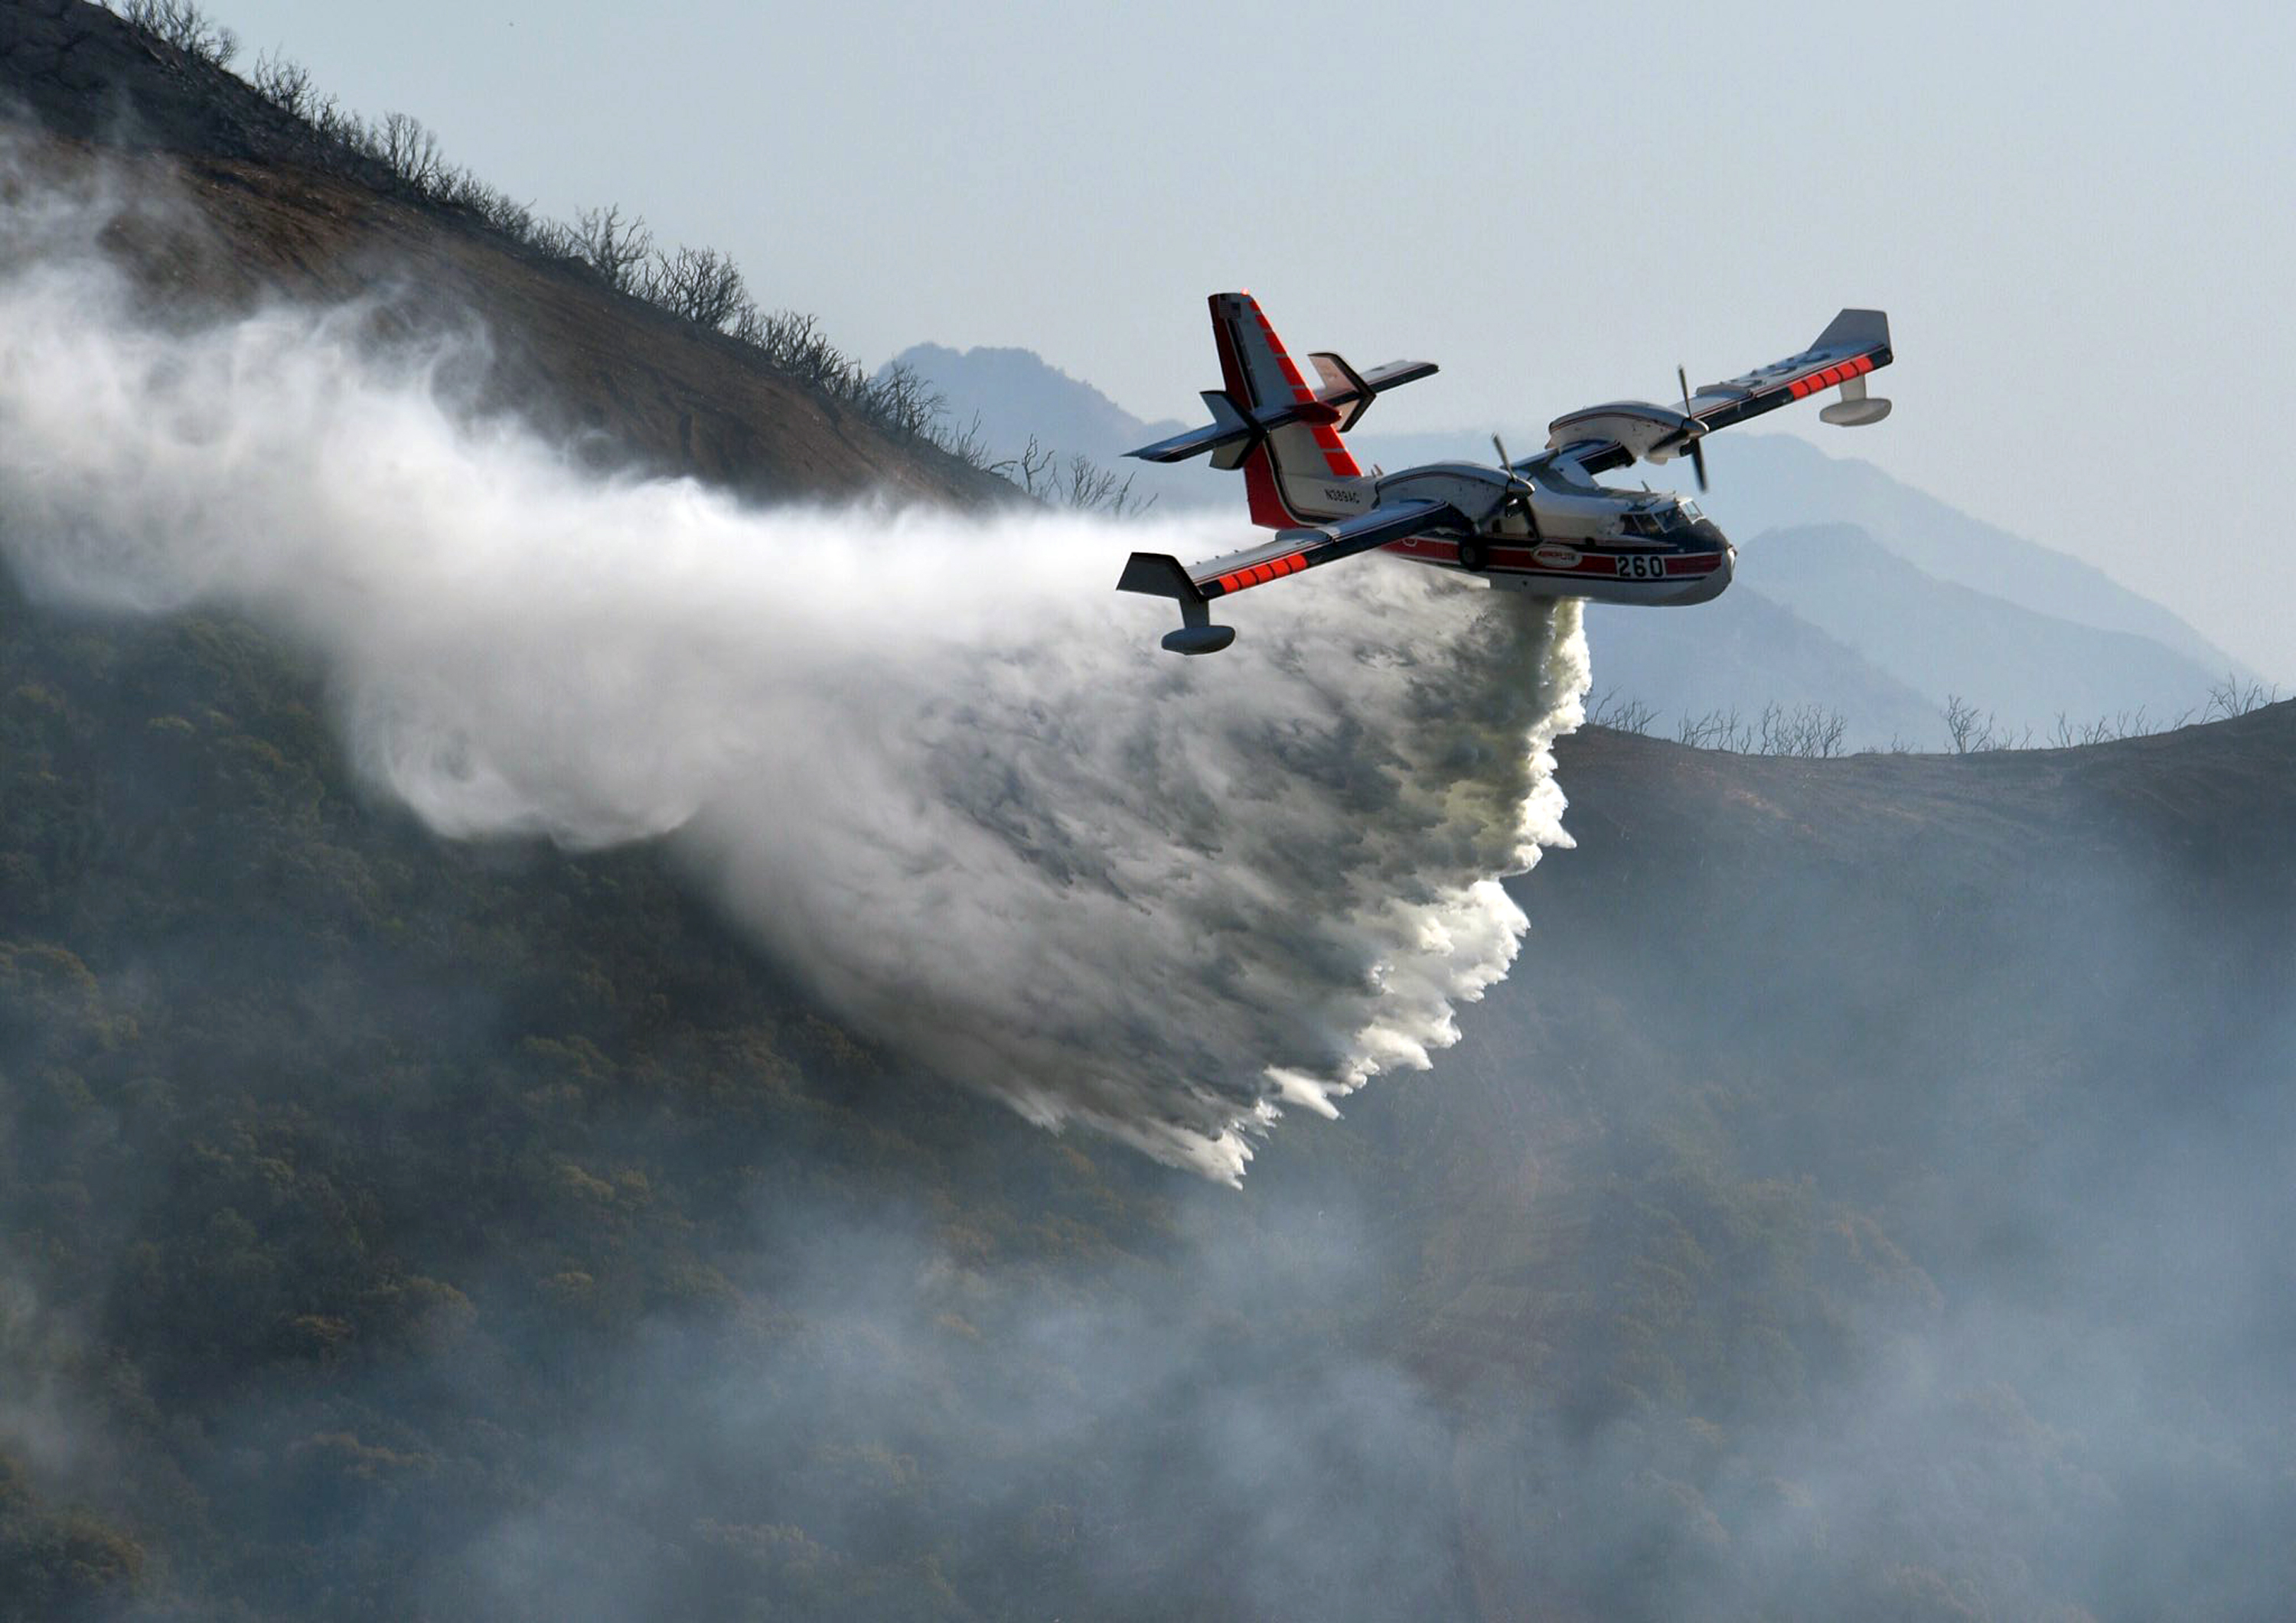 In this photo provided by the Santa Barbara County Fire Department, a Bombardier 415 Super Scooper makes a water drop on hot spots along the hillside east of Gibraltar Road in Santa Barbara, Calif., Sunday morning, Dec. 17, 2017. One of the largest wildfires in California history is now 40 percent contained but flames still threaten coastal communities as dry, gusty winds are predicted to continue. (Mike Eliason/Santa Barbara County Fire Department via AP)